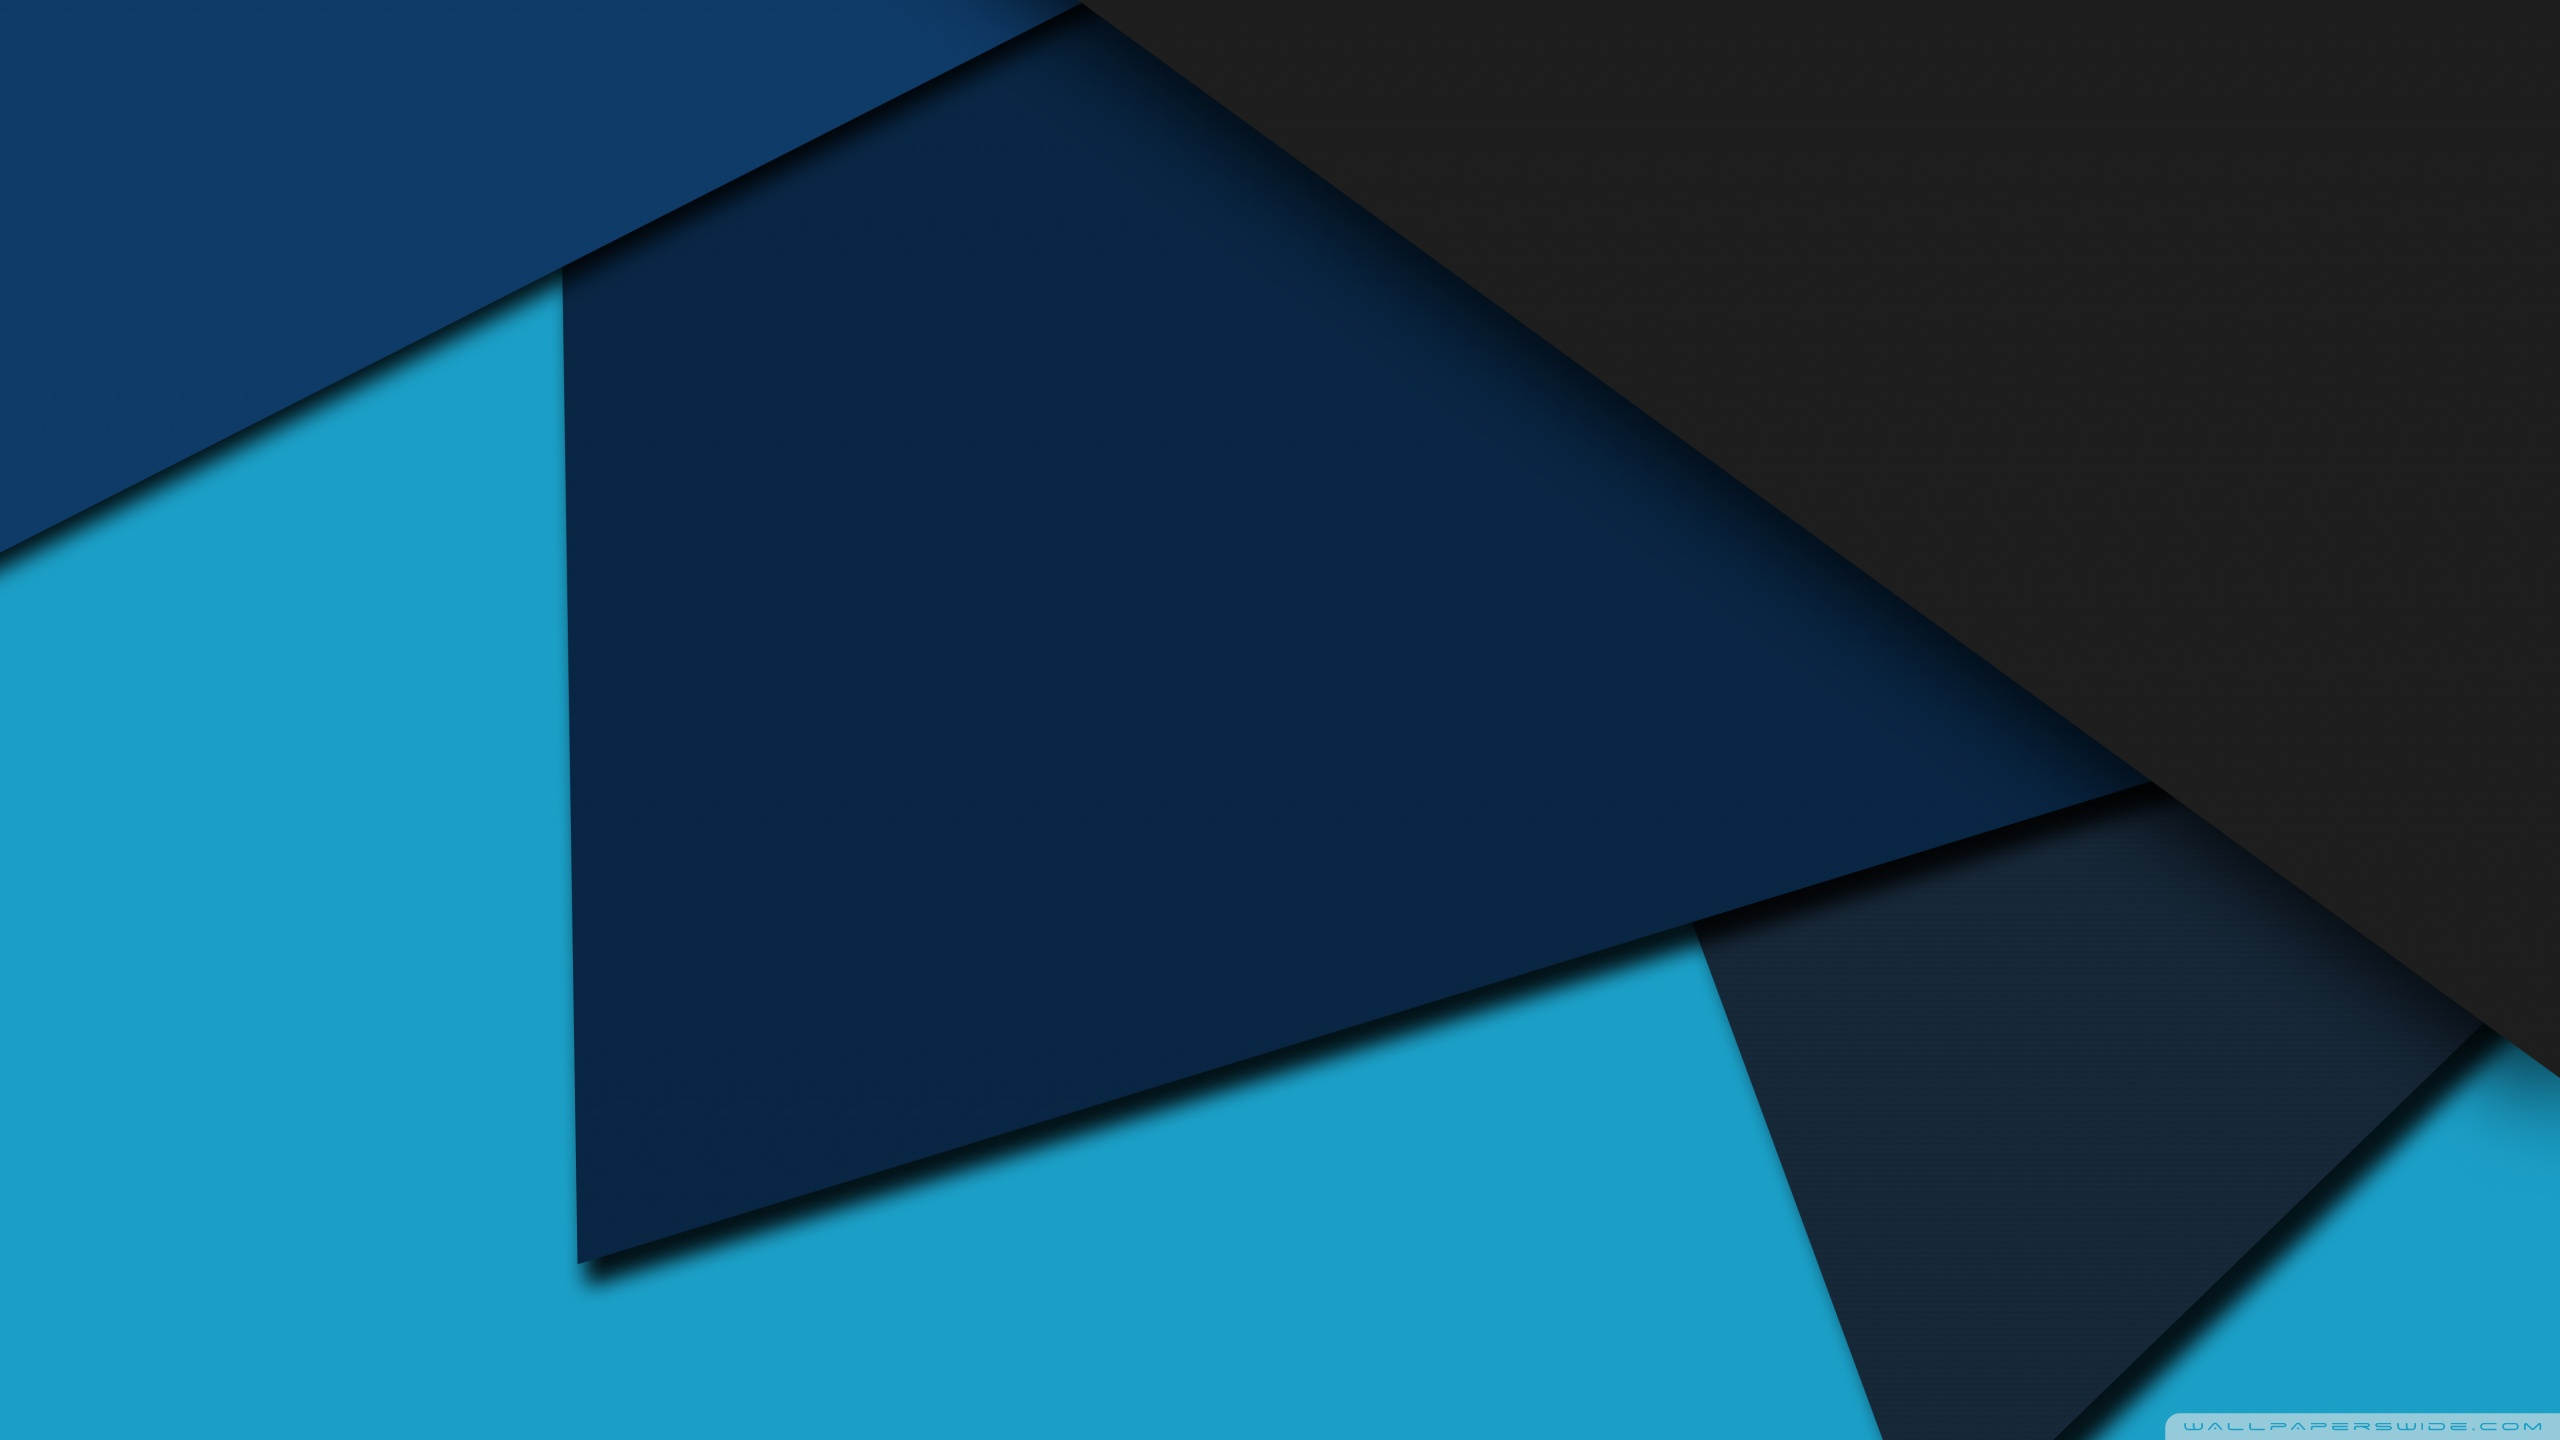 android lollipop material design wallpaper idealtriangles